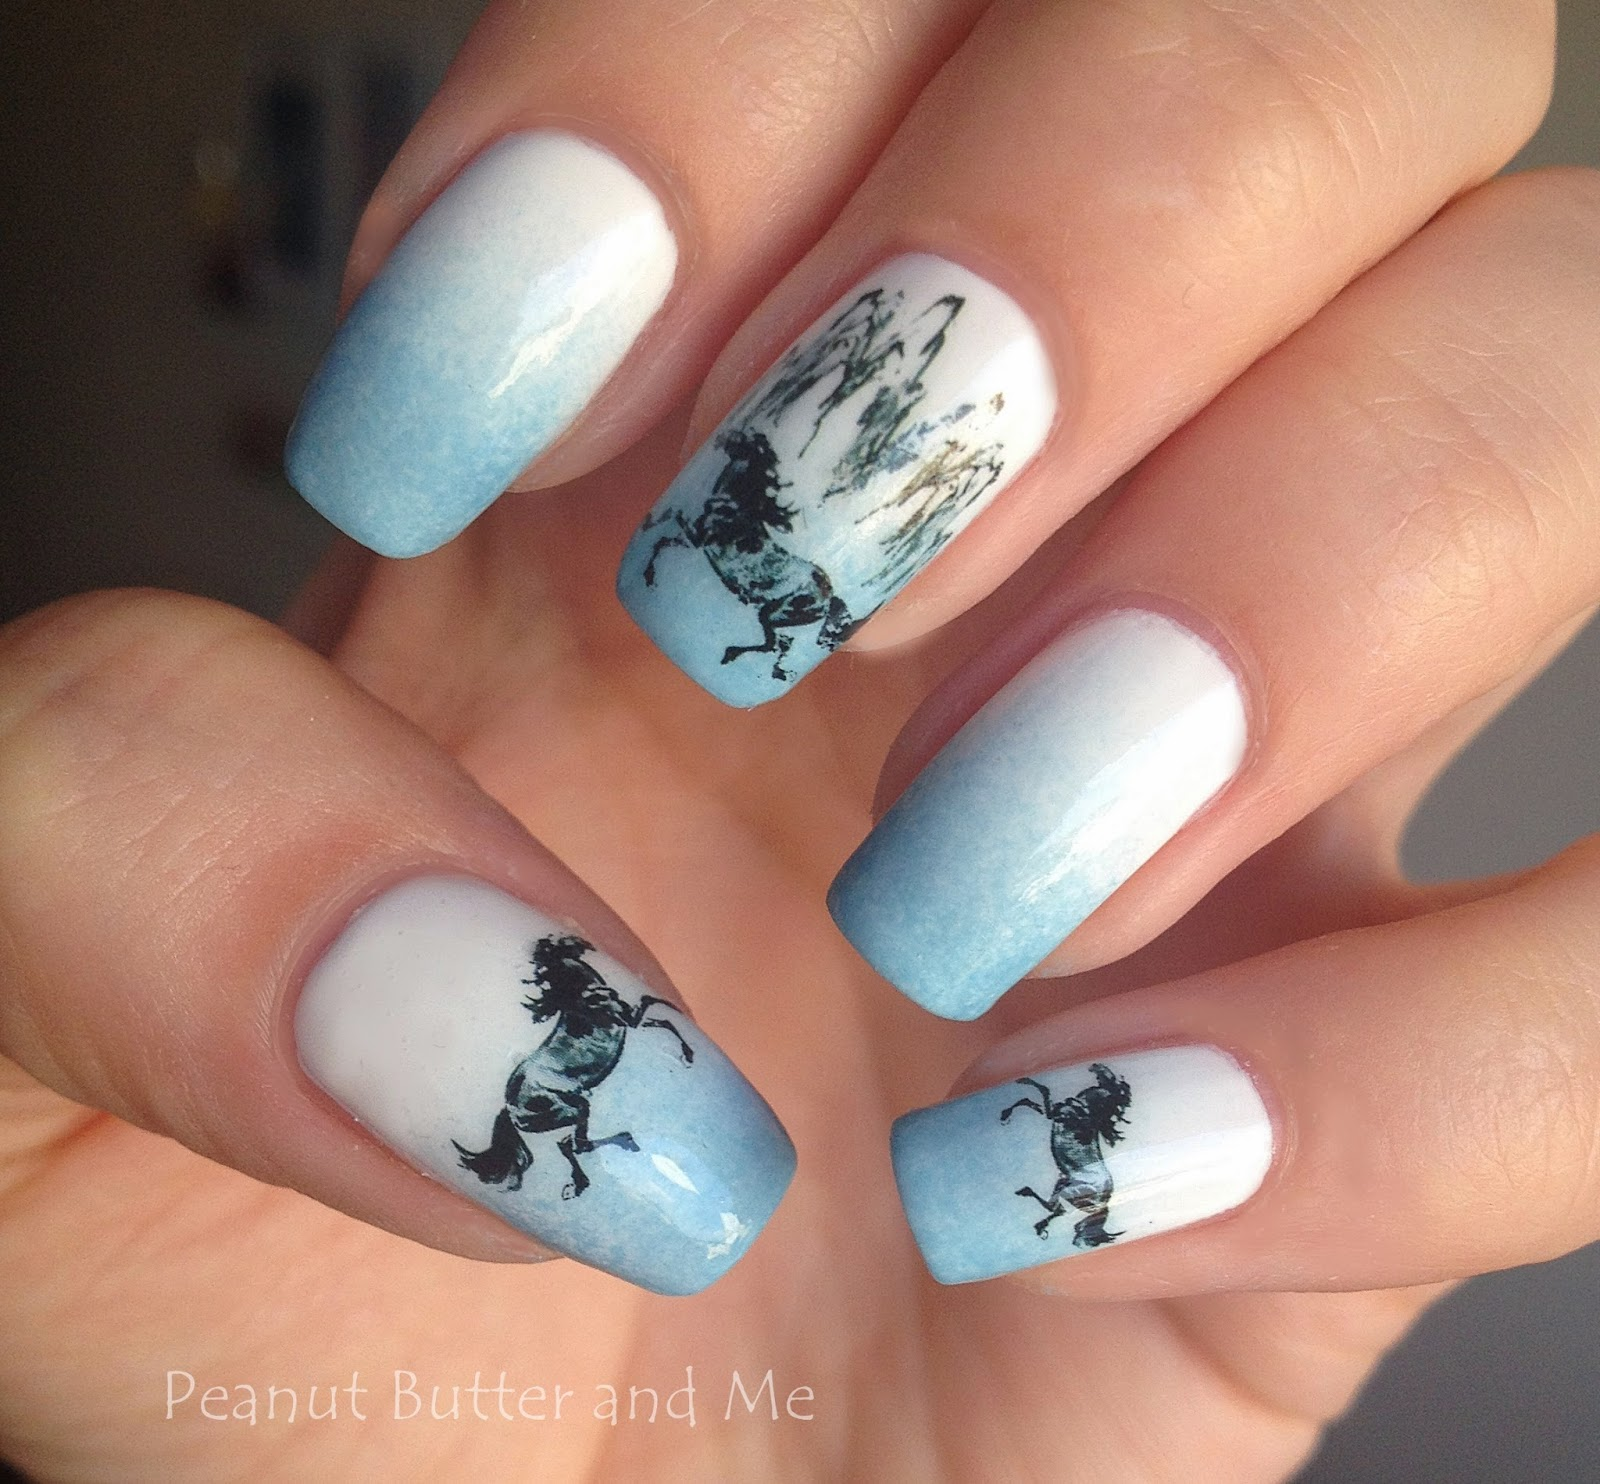 cavalli nails mani blue white polish golden rose hors horses konie paznokcie water detals